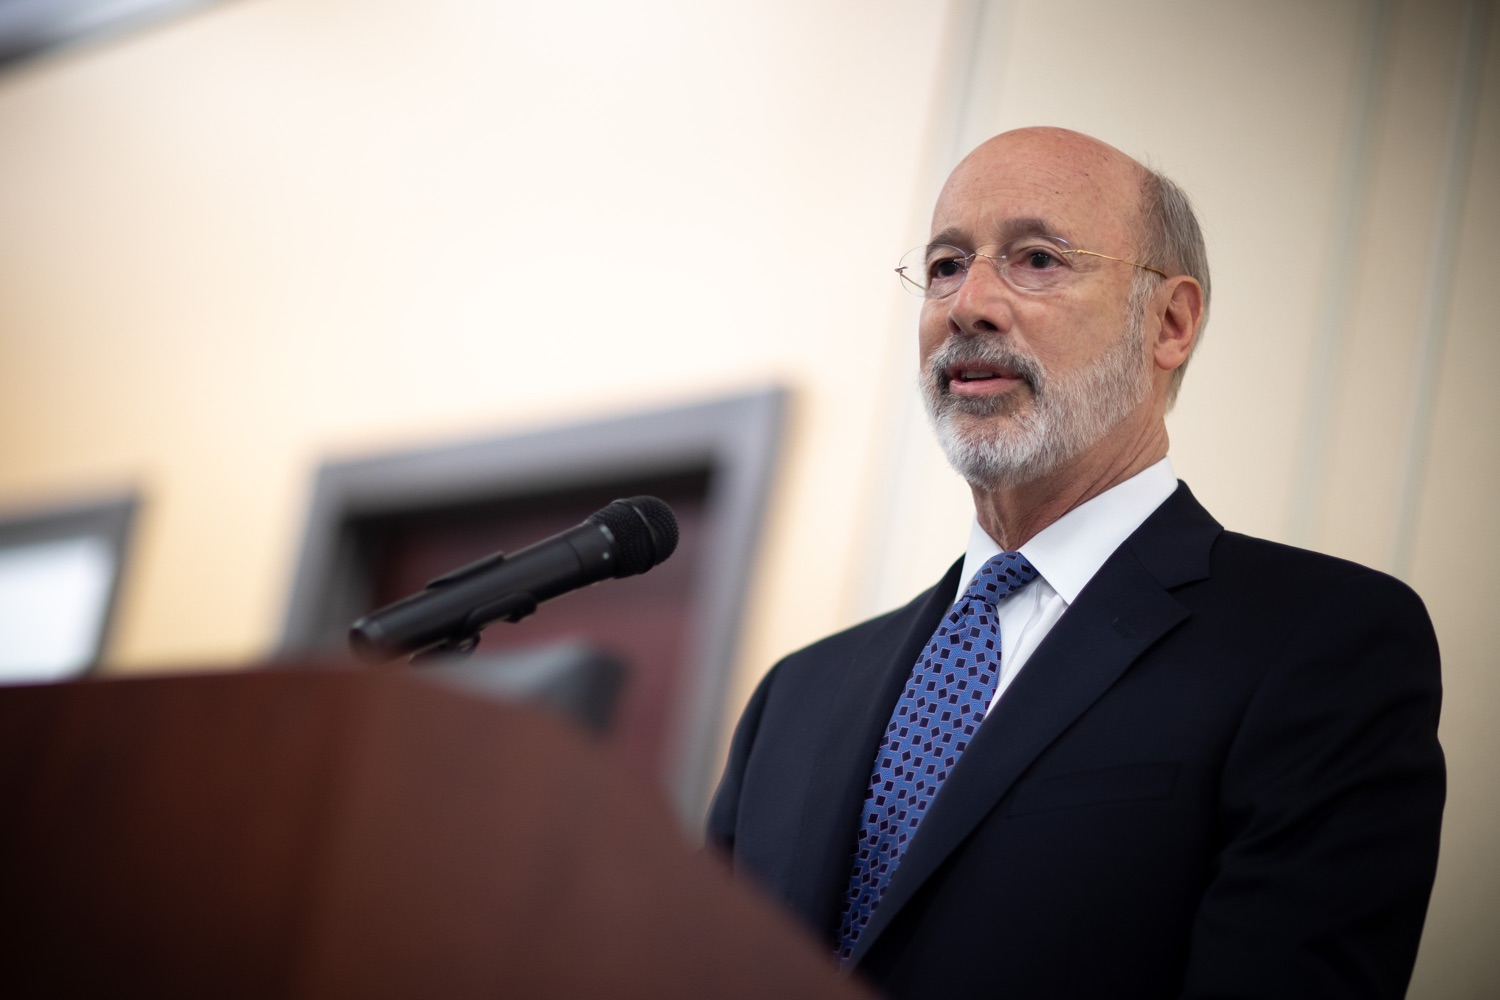 "<a href=""http://filesource.abacast.com/commonwealthofpa/photo/17598_gov_charter_schools_dz_007.jpg"" target=""_blank"">⇣ Download Photo<br></a>Pennsylvania Governor Tom Wolf speaks about charter school reform at a meeting of the Pennsylvania Association of School Administrators.  Governor Tom Wolfs commonsense plan to improve the educational quality of charter schools and control rising costs will save nearly $280 million a year, the governor told the Pennsylvania Association of School Administrators today. The governor has a three-part plan to fix Pennsylvanias charter school law which is regarded as one of the worst in the nation.  - Harrisburg, PA. Friday, November 15, 2019."